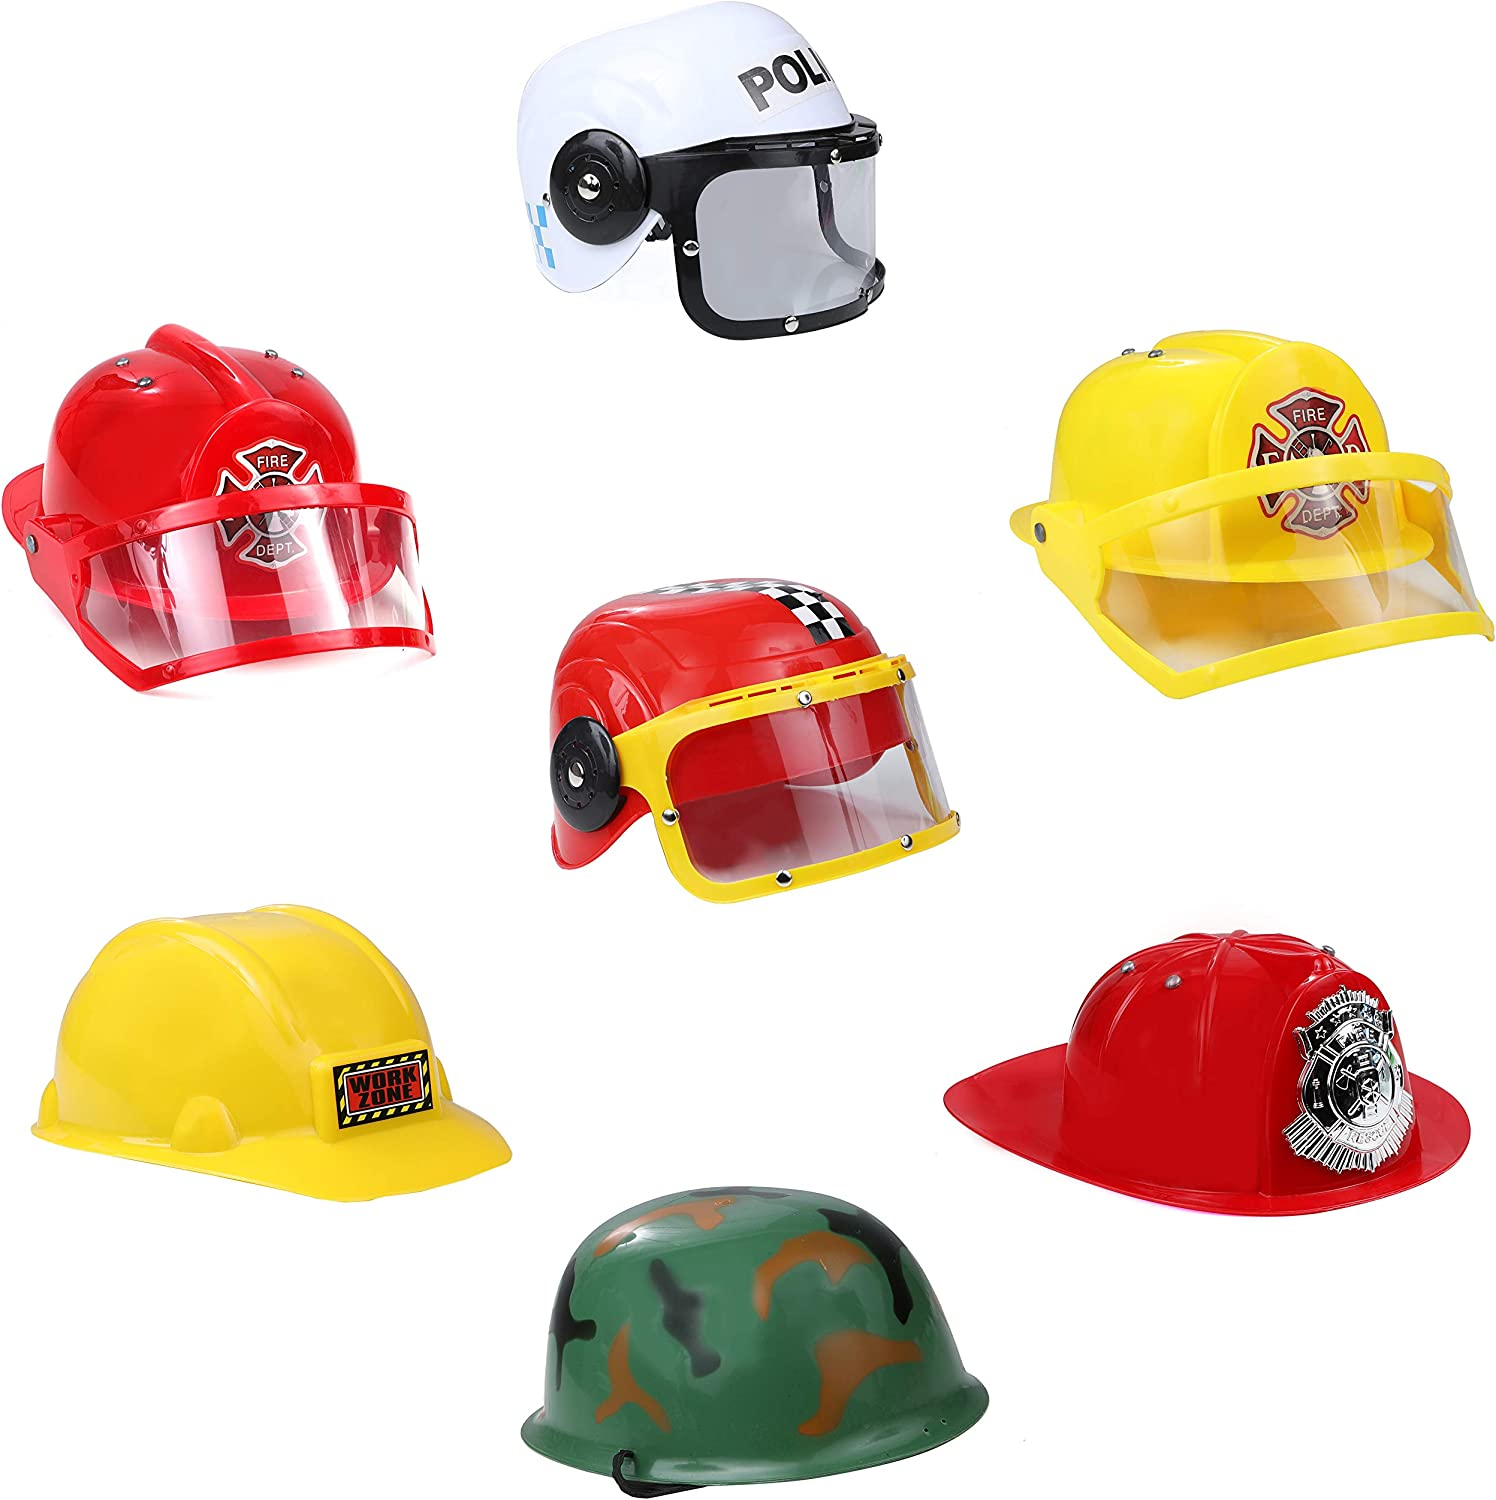 IQ Toys Role Play Dress Up Costume Hats Set of 5 Assorted Party Hats  Including Police, SWAT Team, Fire Chief, Army, Construction, Racing Car,  and